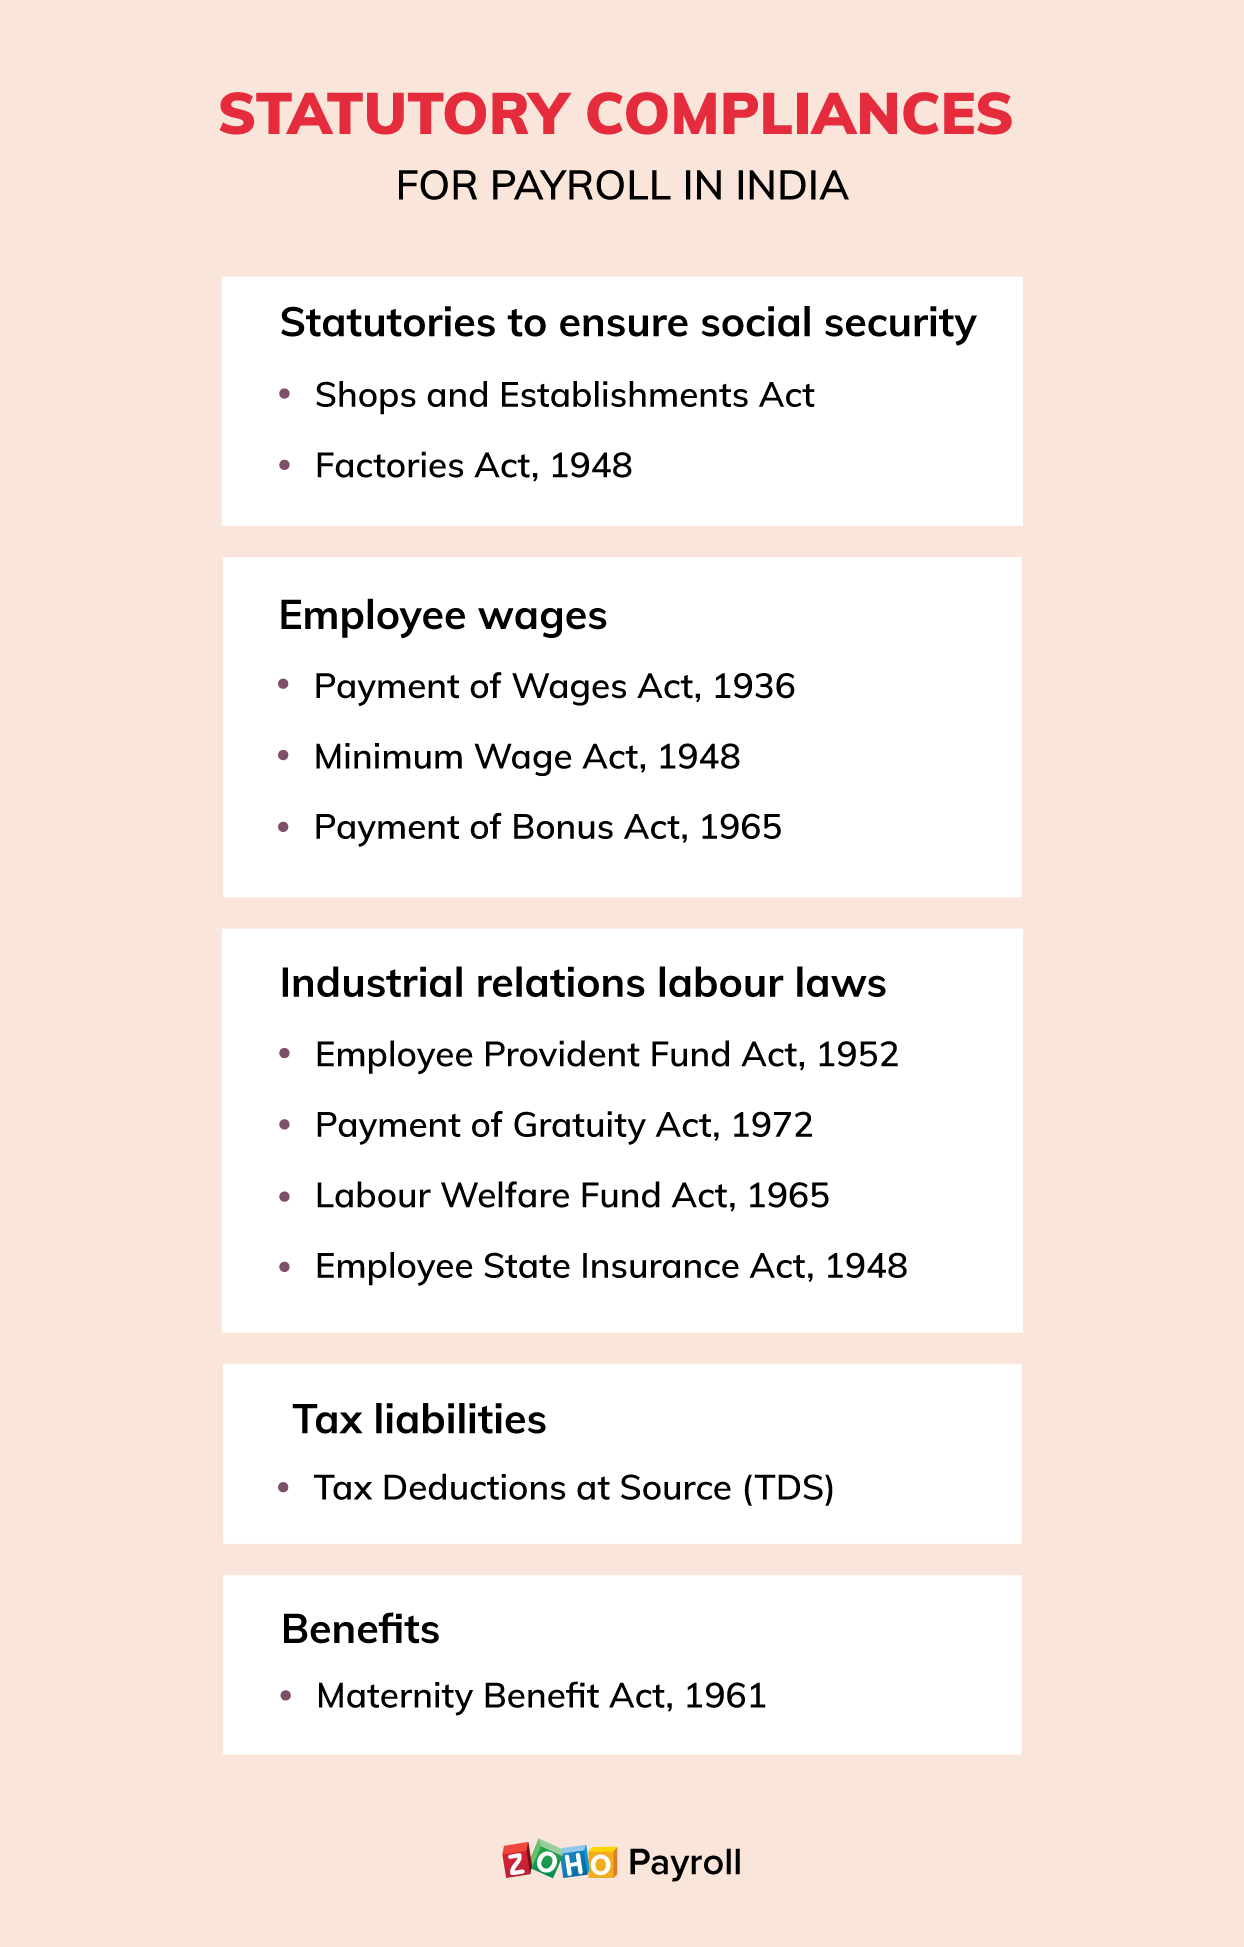 List of statutory compliances for payroll in India